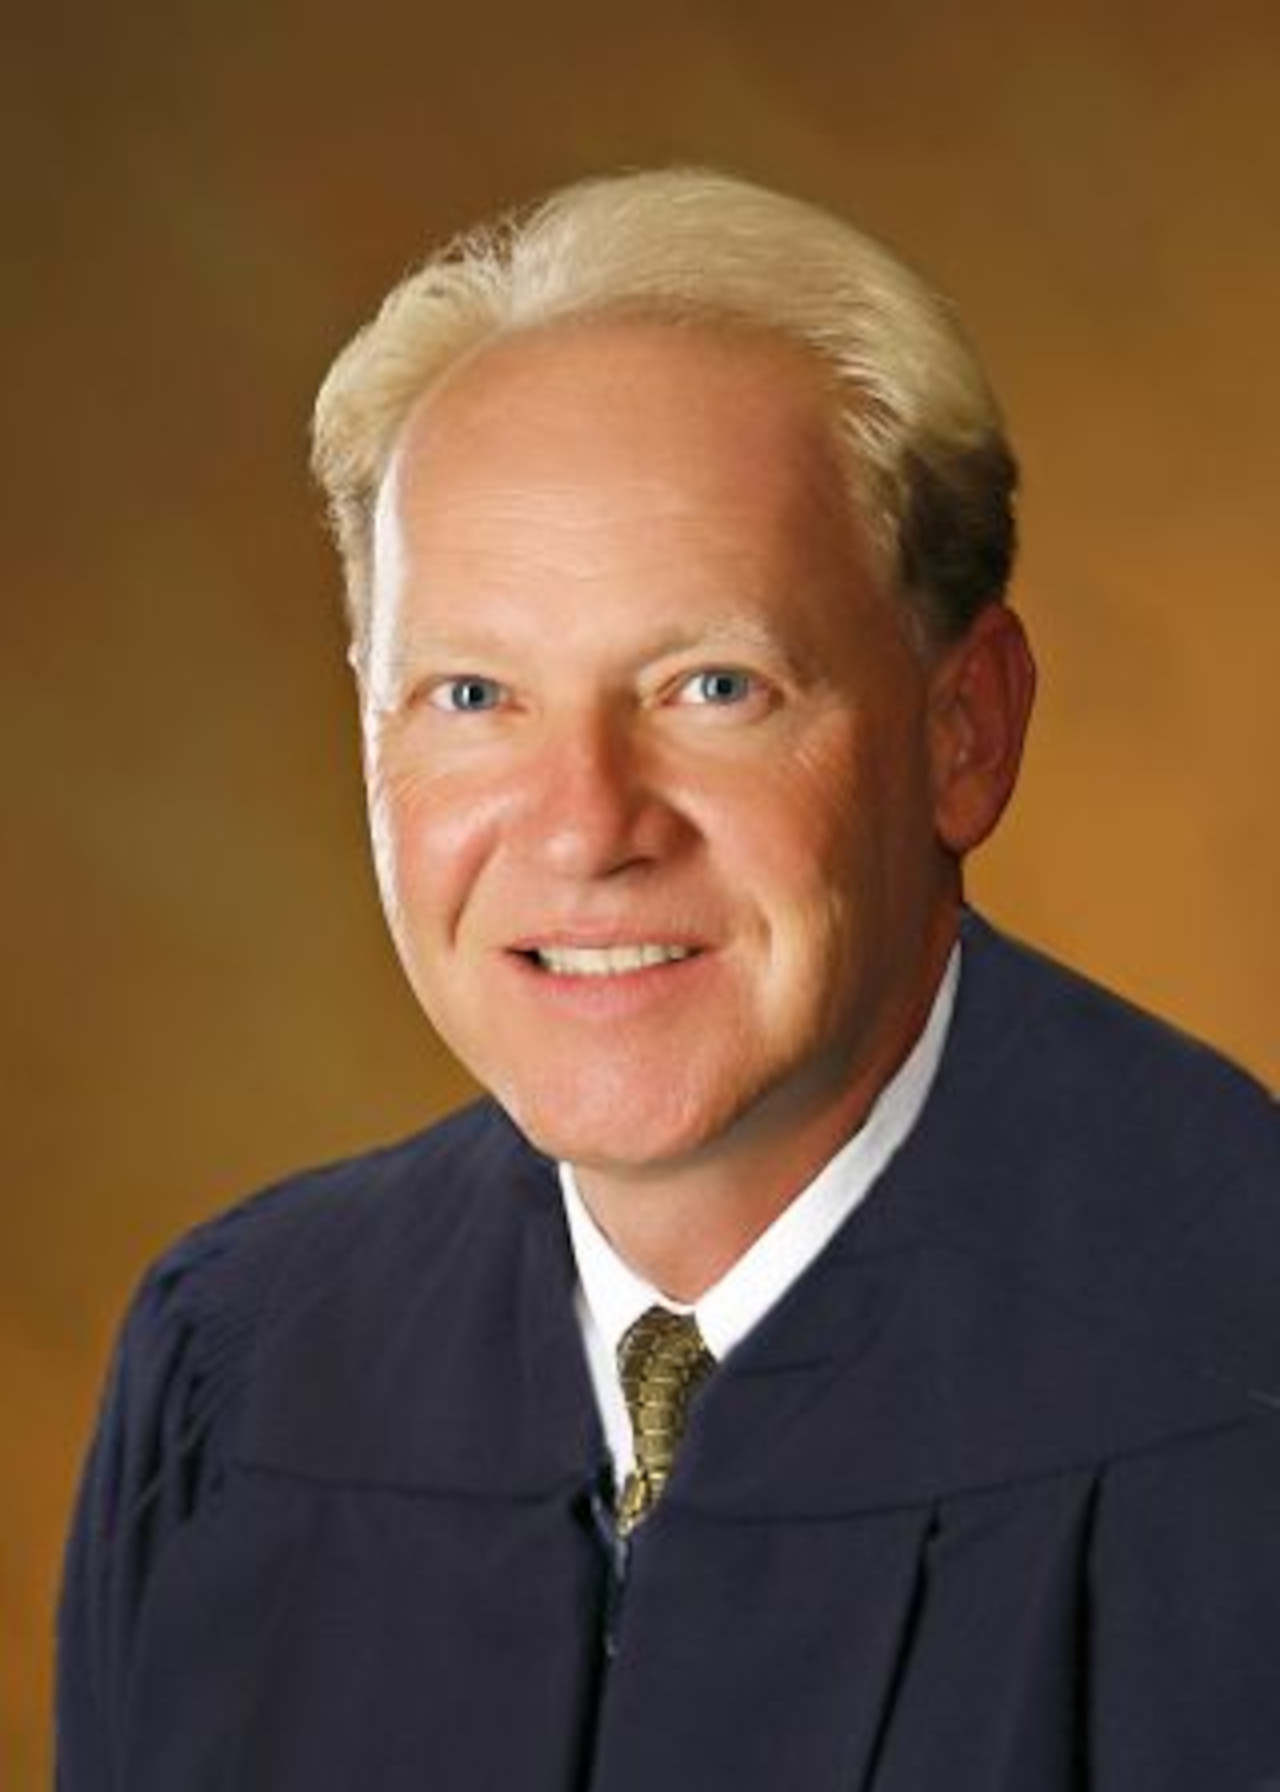 Judge Groeb